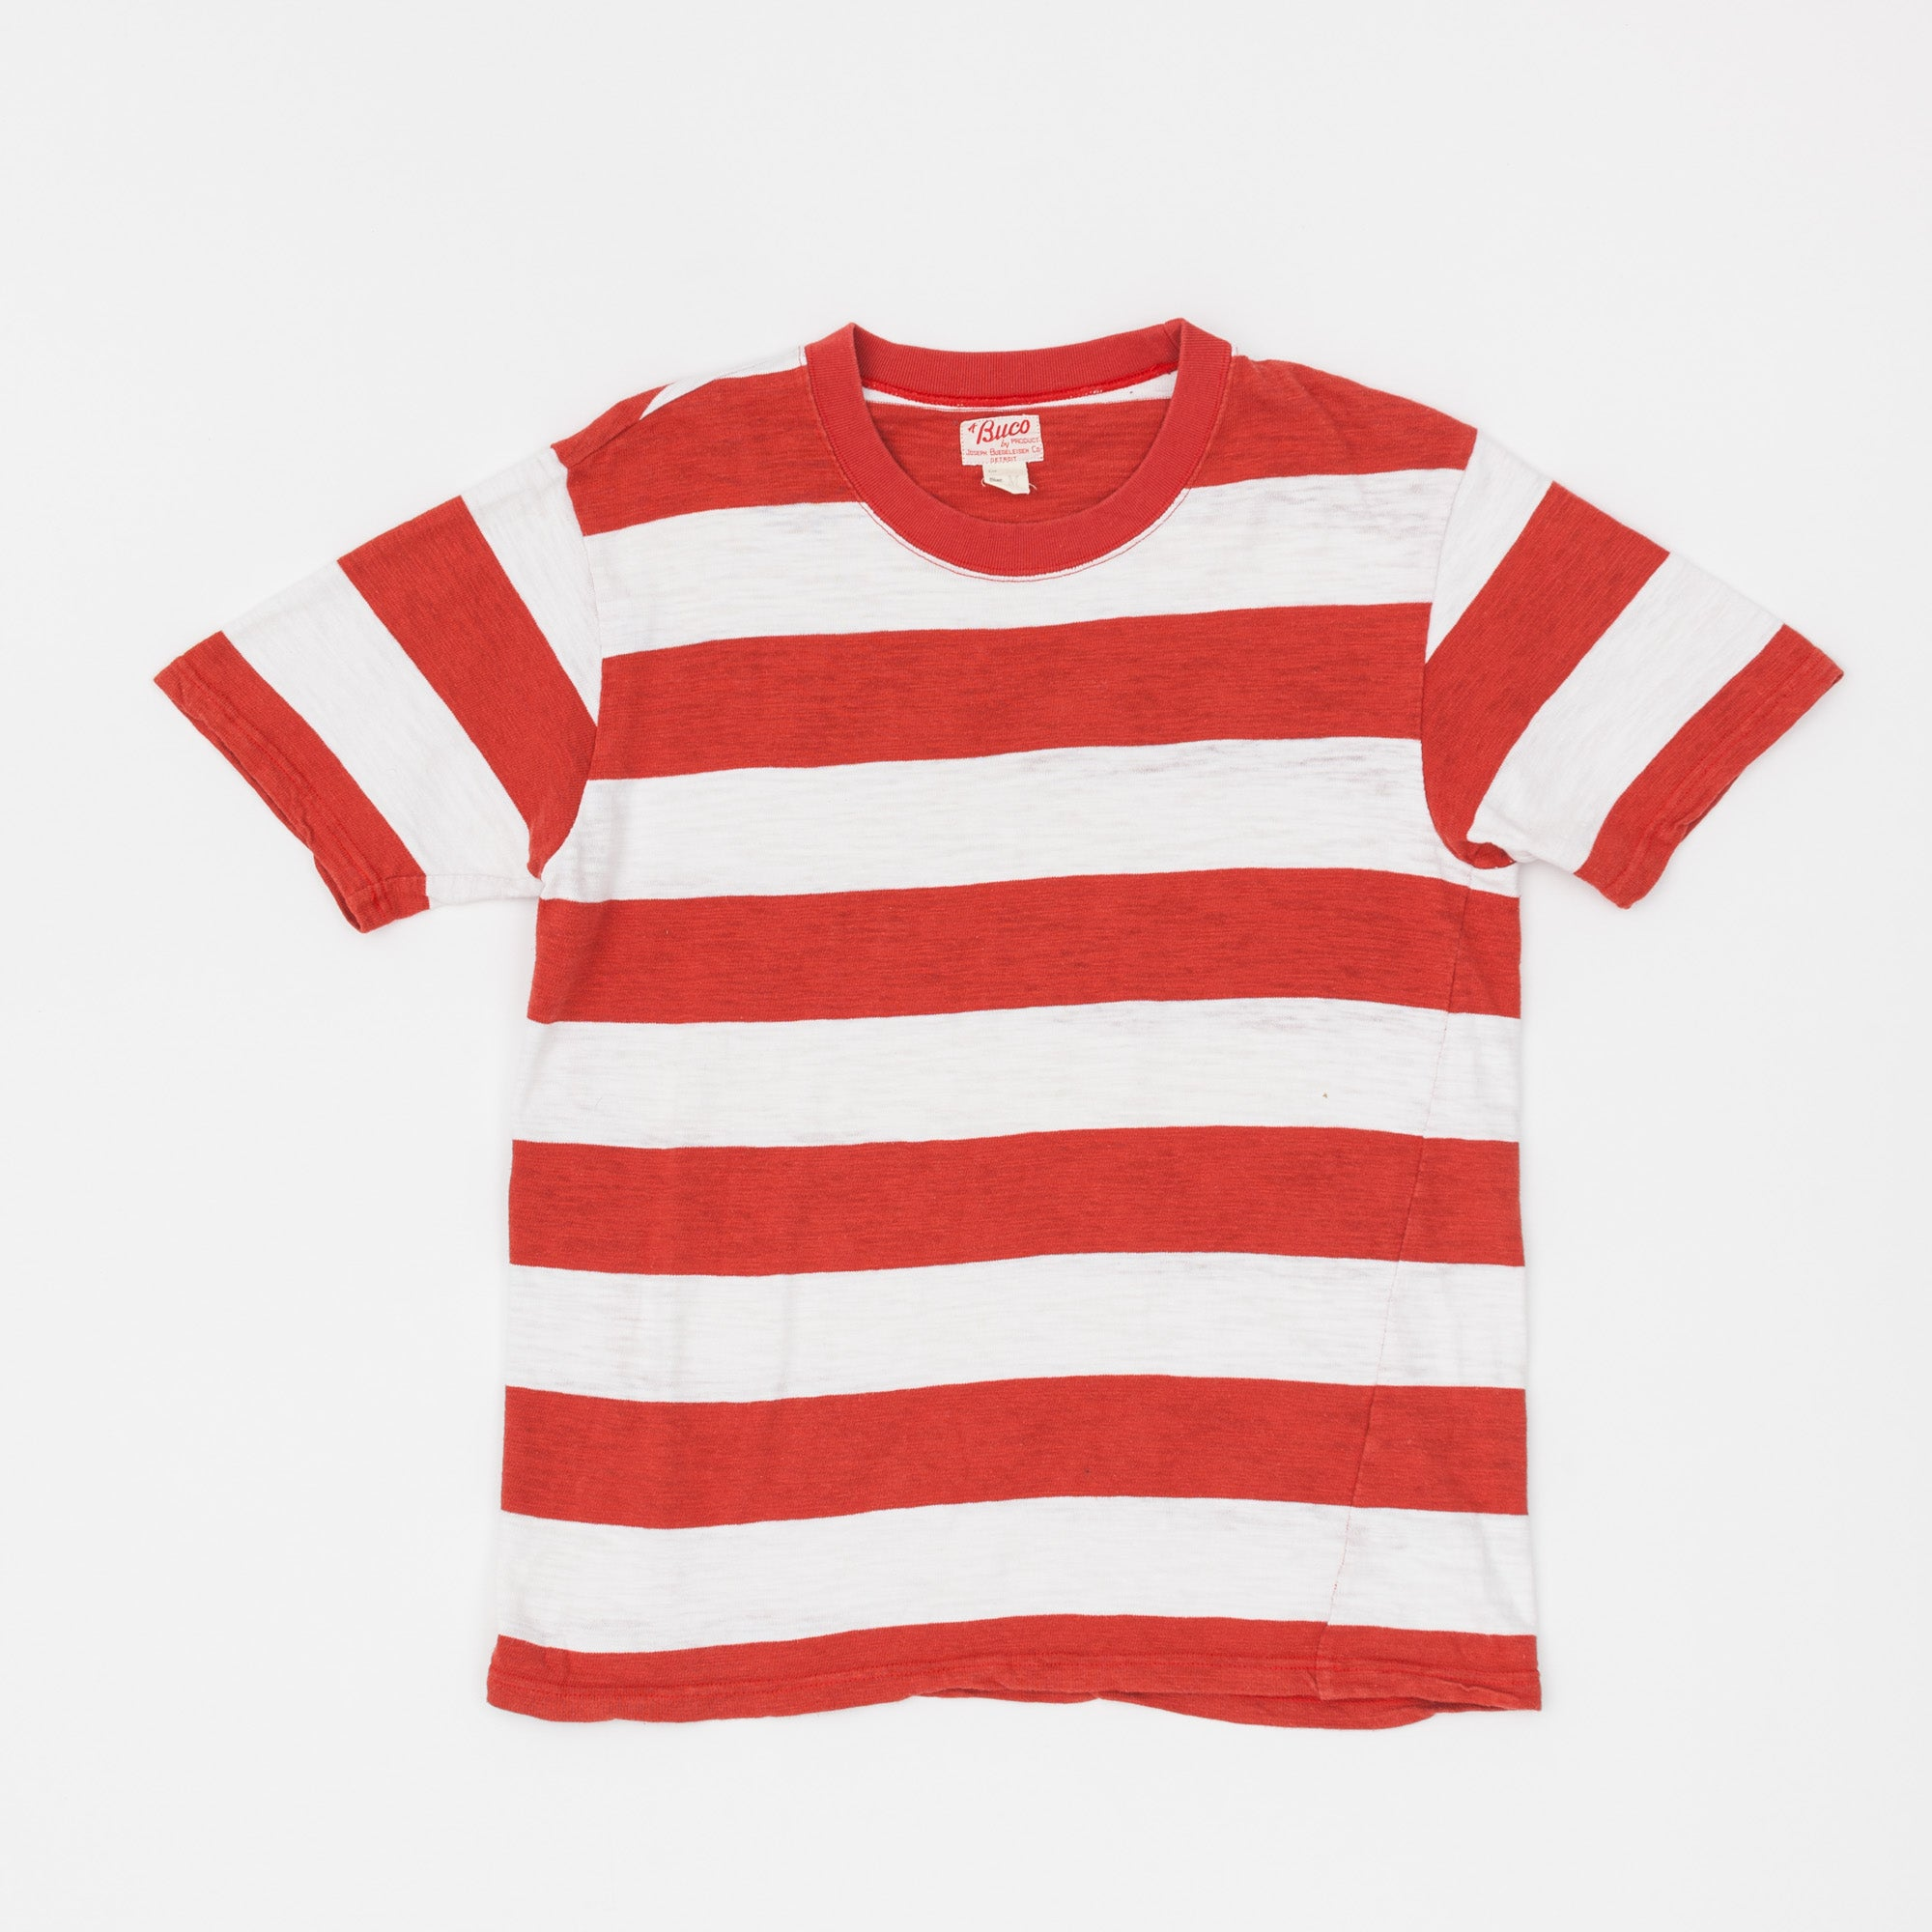 The Real McCoy's Buco Striped T-Shirt